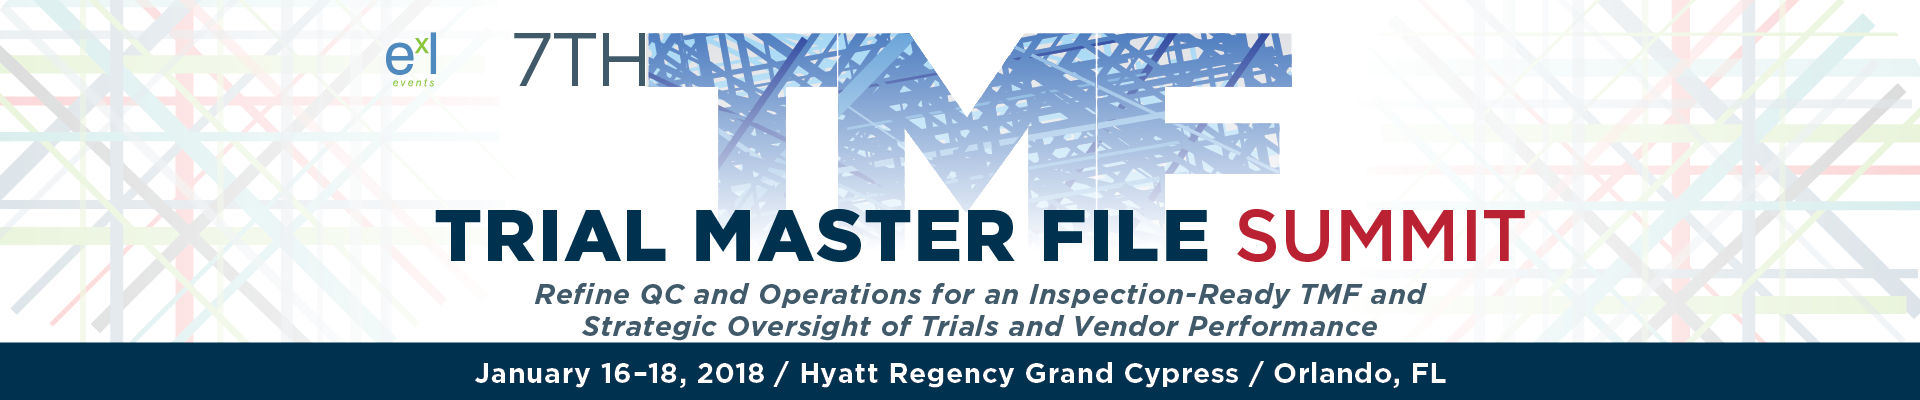 7th Trial Master File Summit